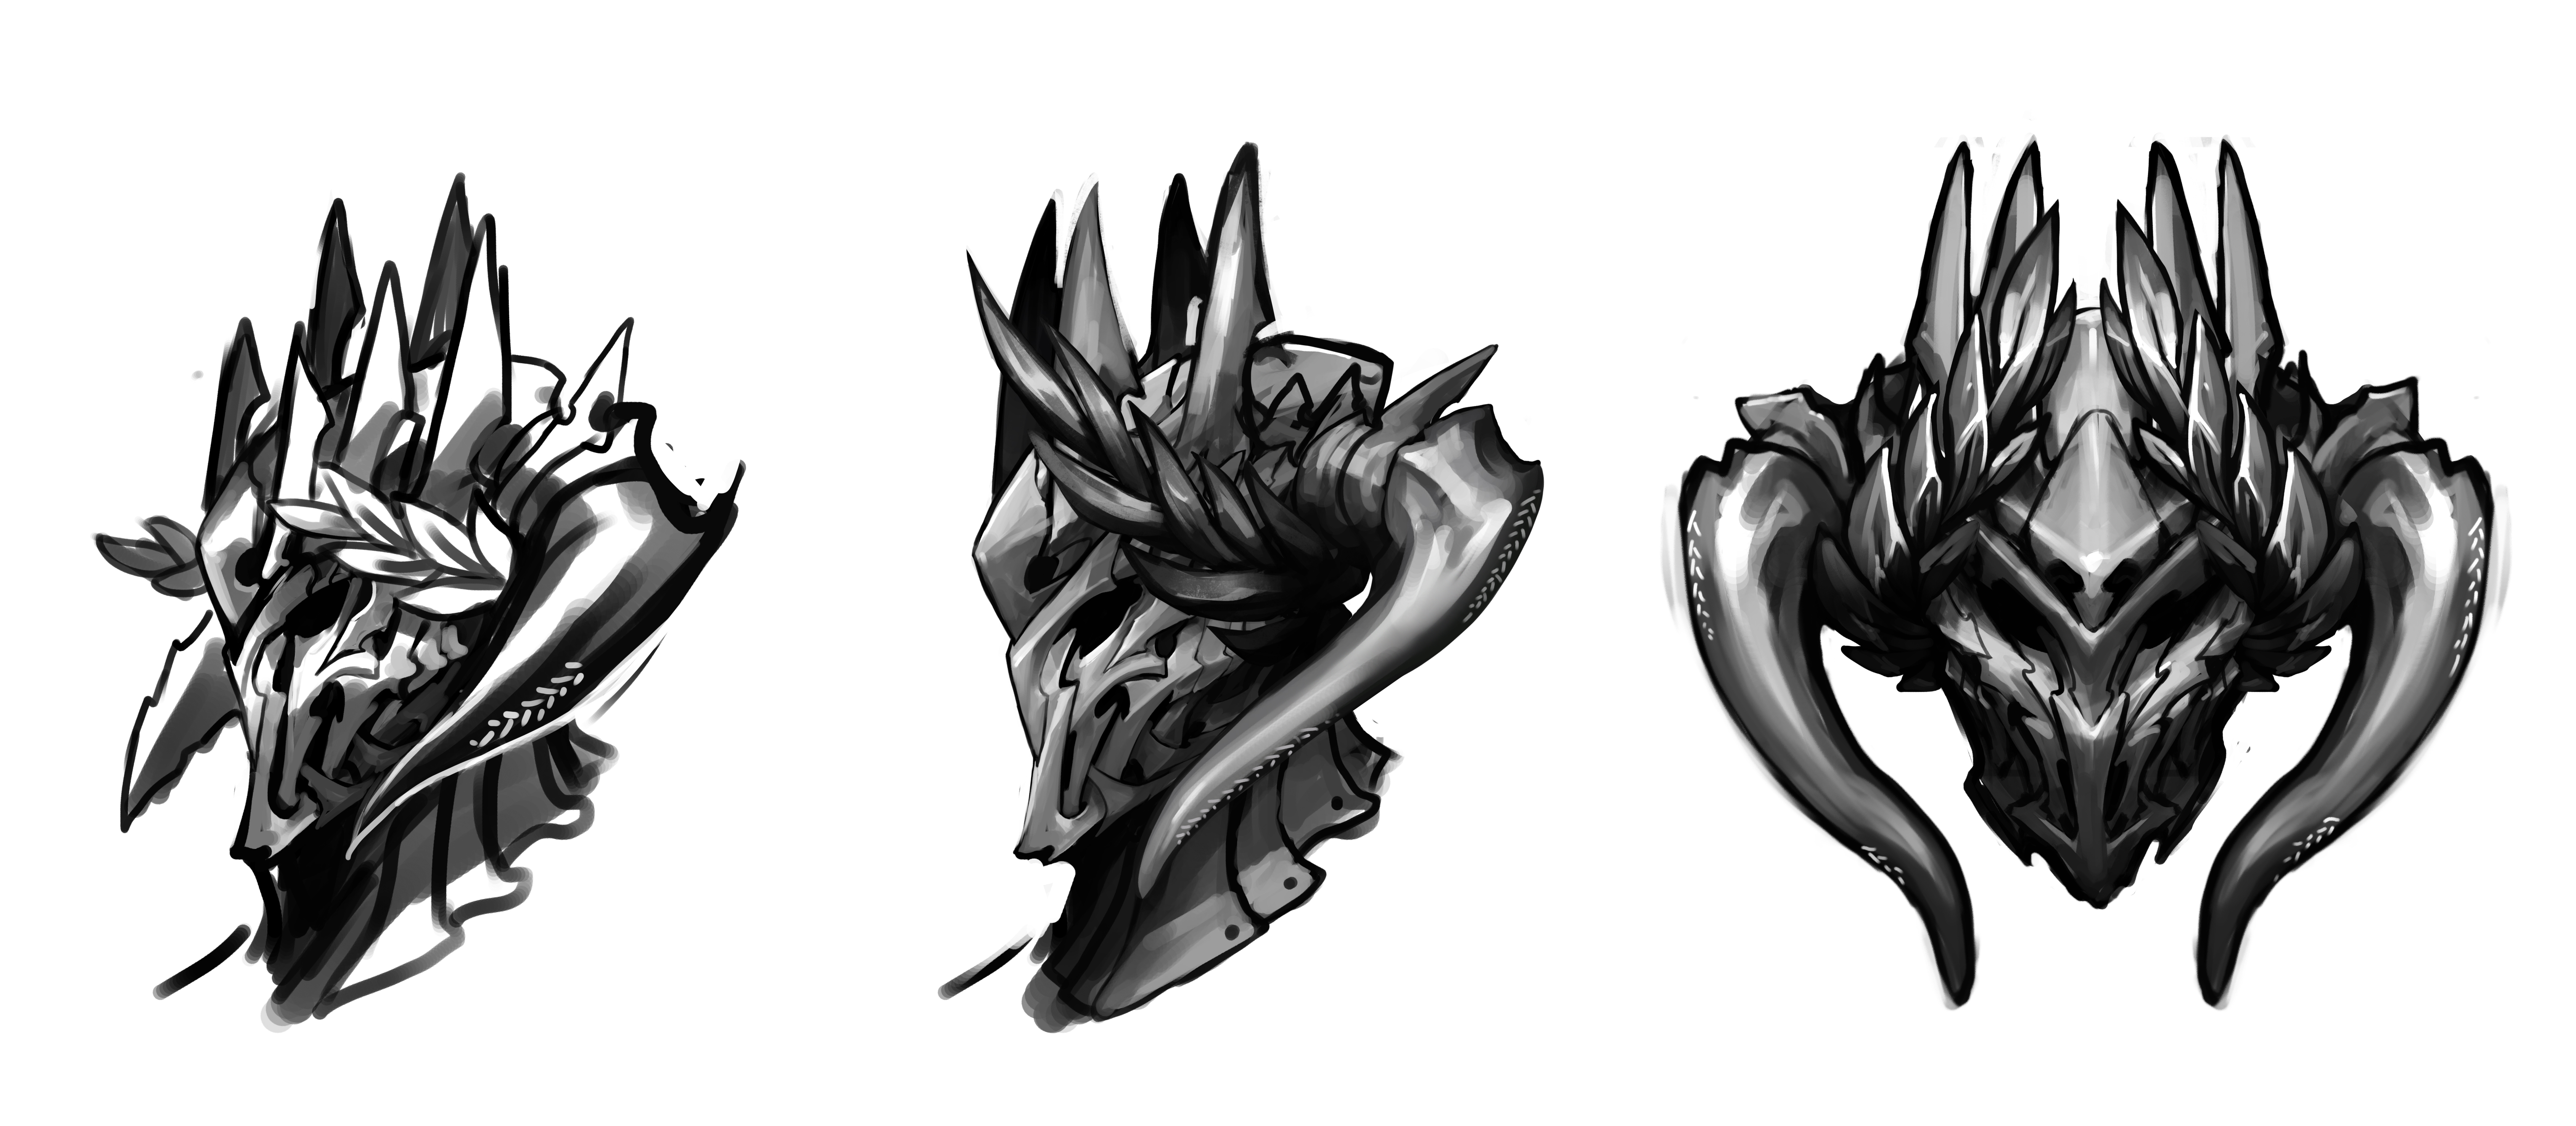 how to draw a knight helmet step by step how to draw a knight step by step tutorial by step a step helmet how knight draw to